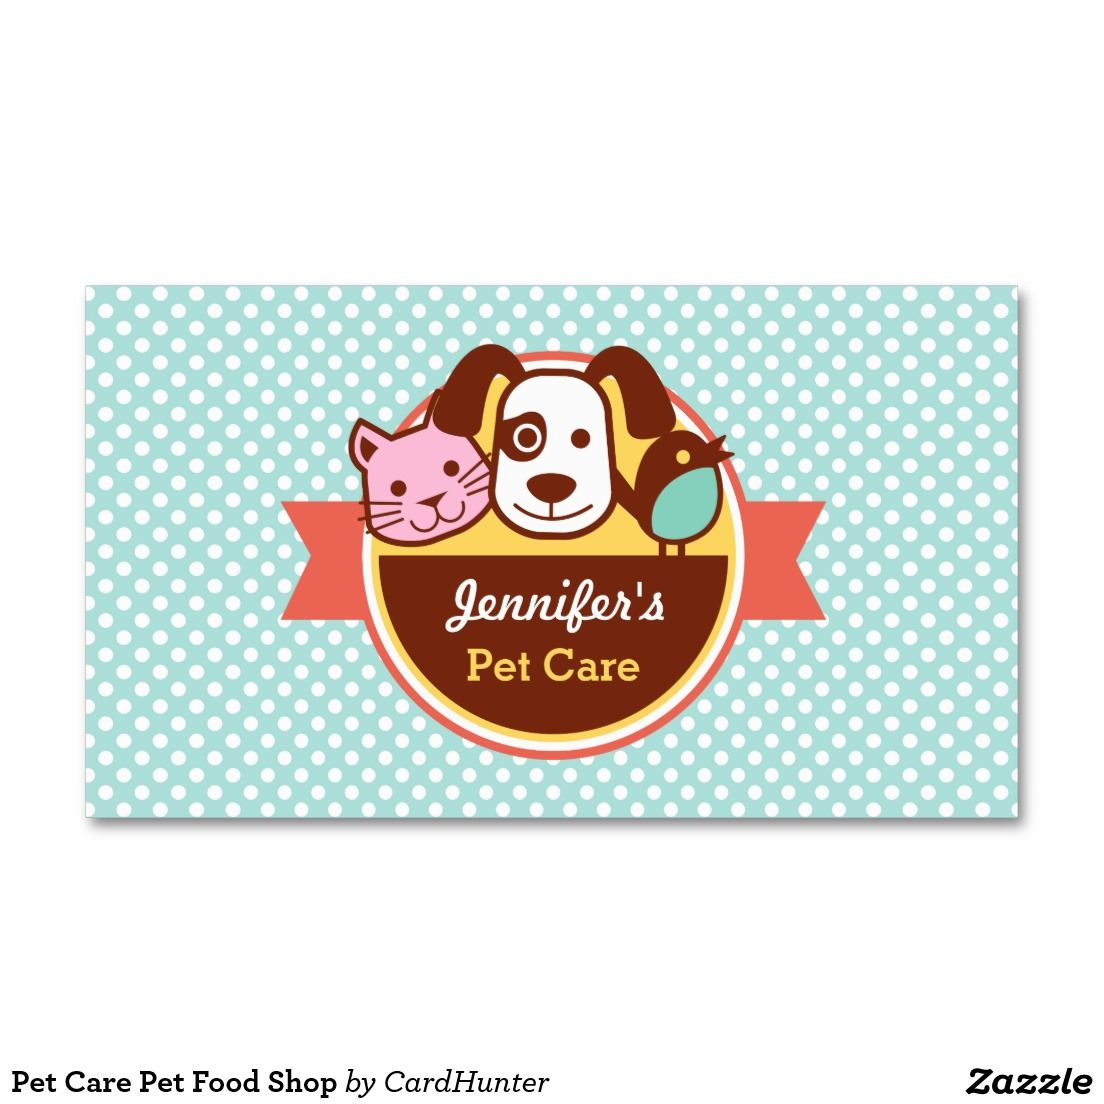 Pet Care Pet Food Shop Business Card | Pet care and Pet food